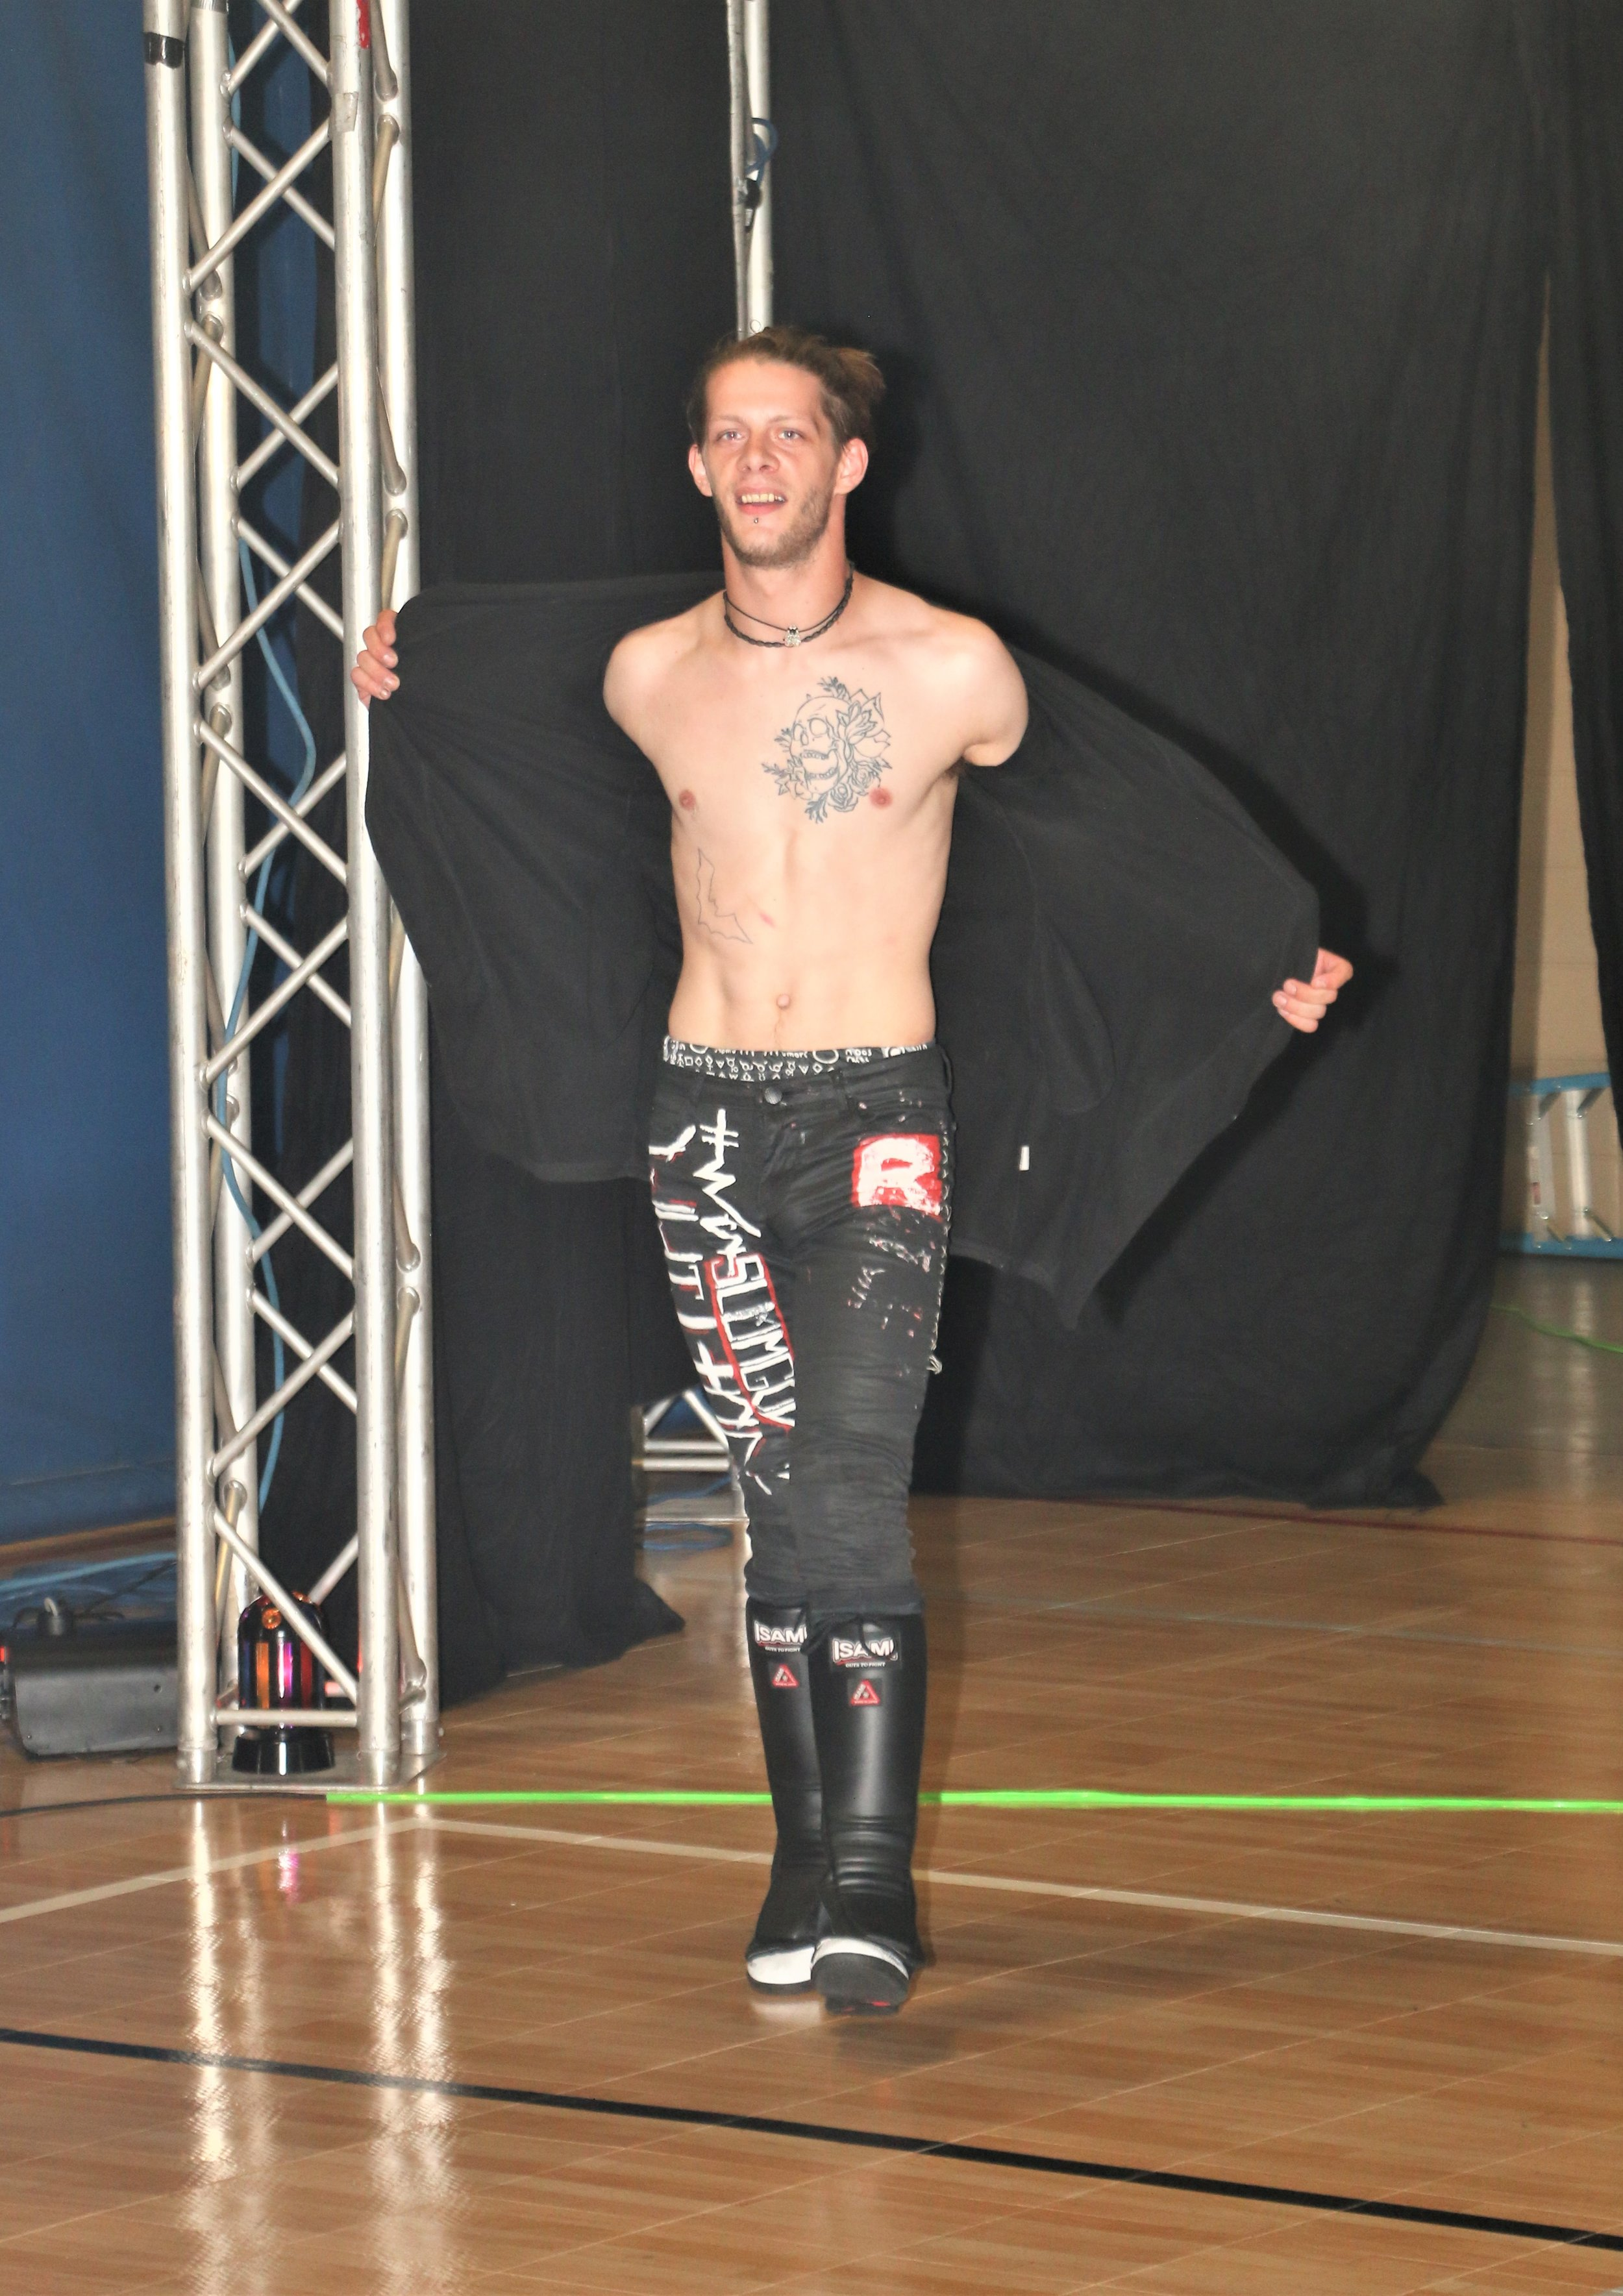 """Slumgod"" Quinn Whittock enters the arena for the six-man scramble match."